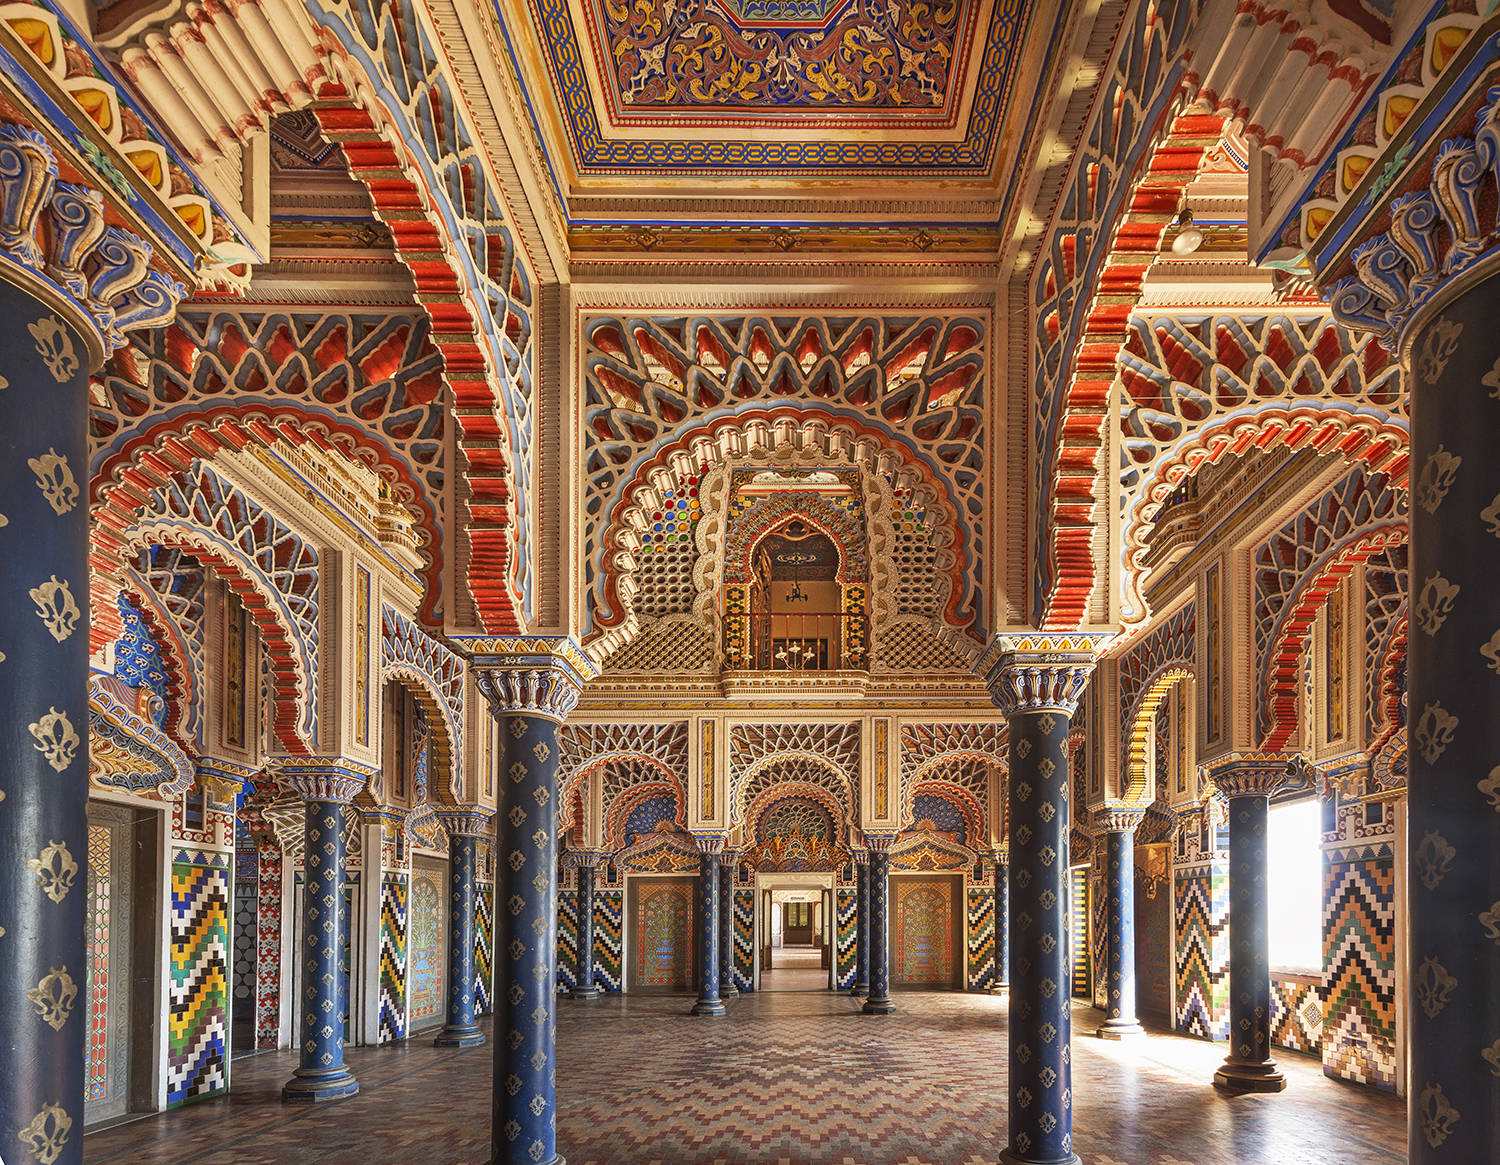 The Castle of Sammezzano May Be the Most Psychedelic